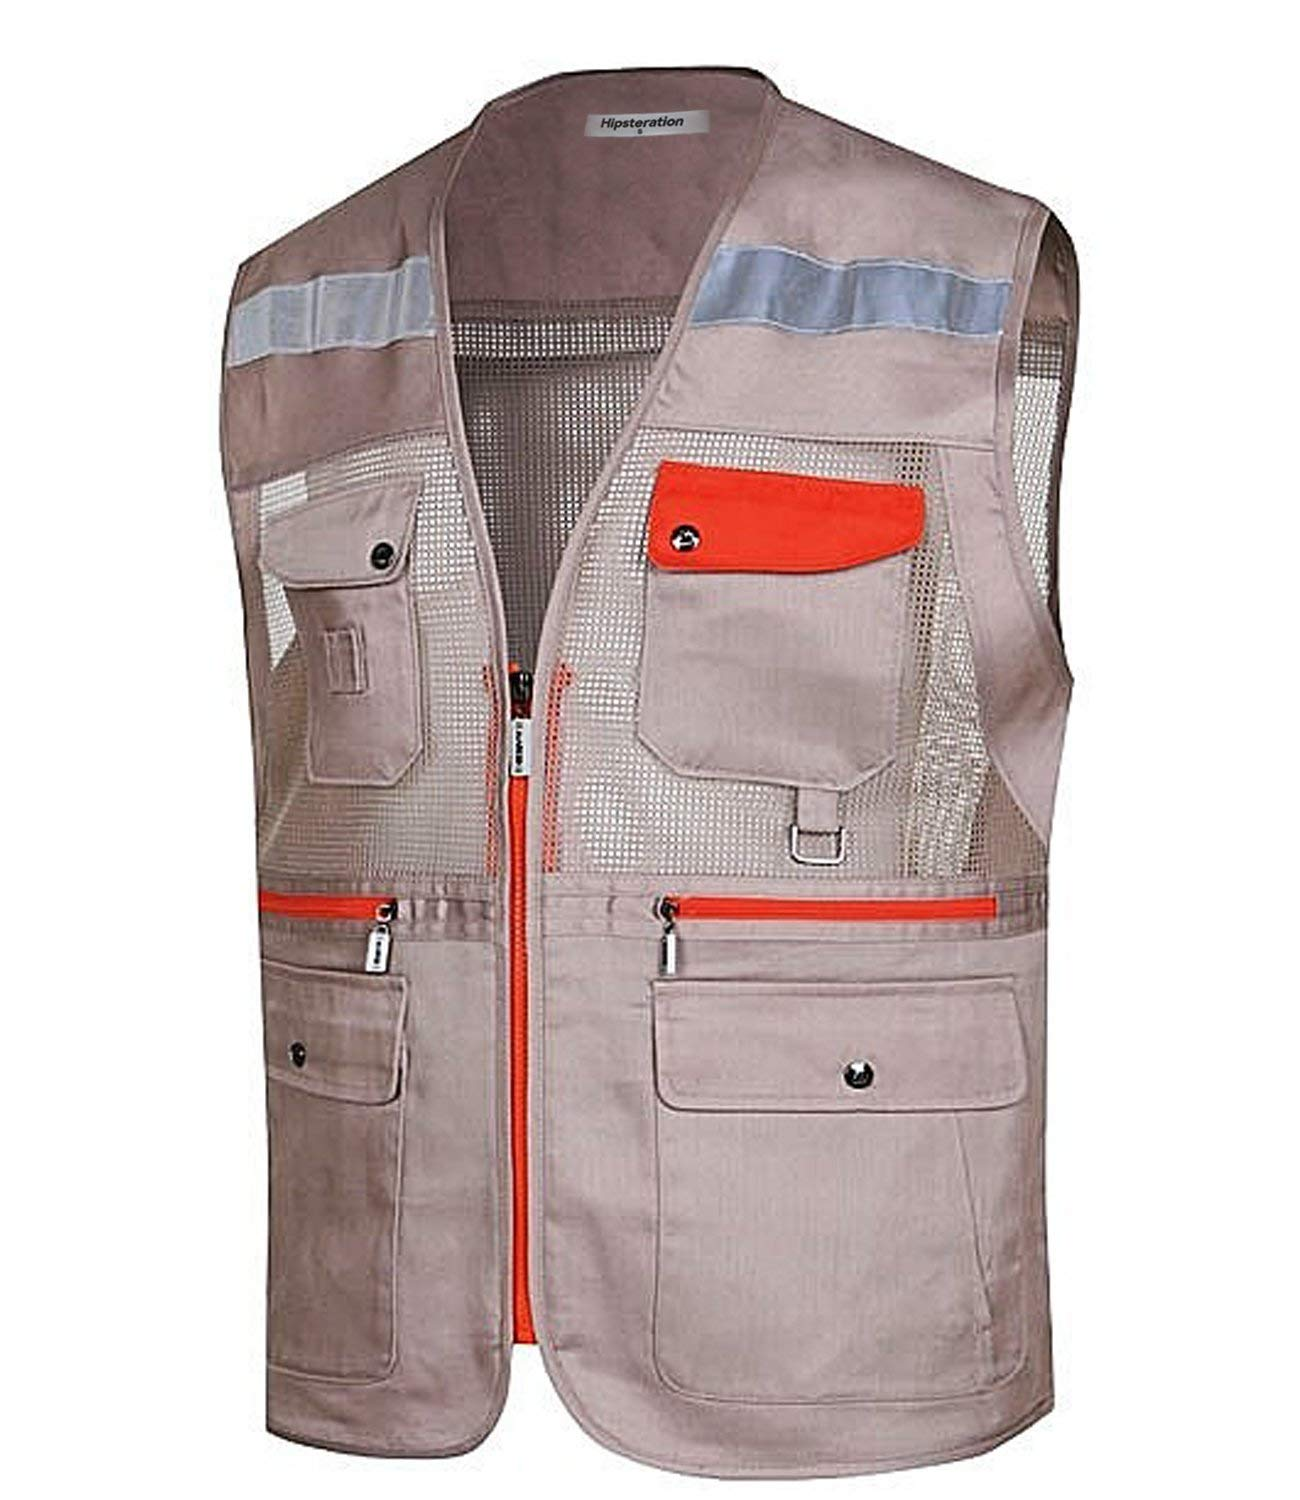 Hipsteration Men's Casual Outdoor Multi Pockets Utility Travel Fishing Hunting Reflective Vest (MOVN209) Beige, XS